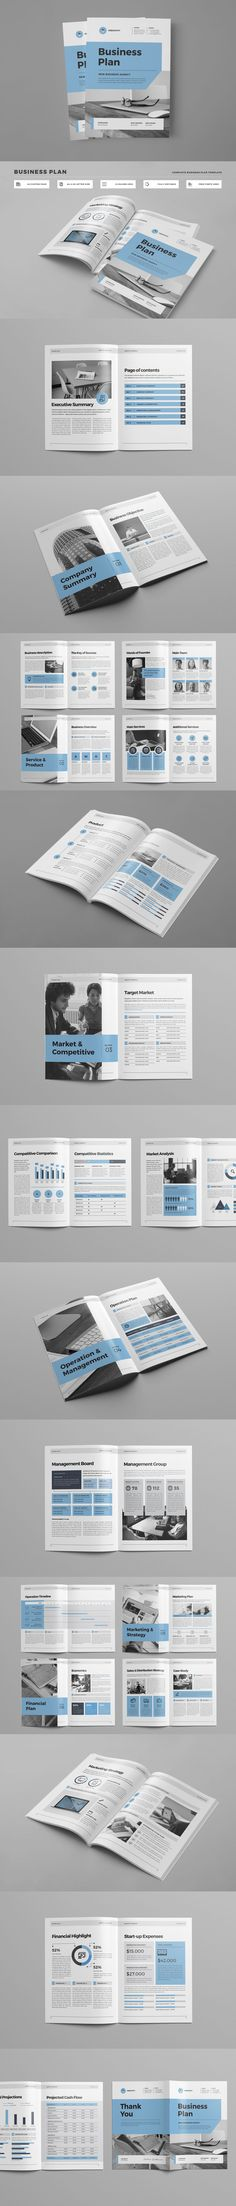 The Business Plan Template Indesign Indd Download Here Http